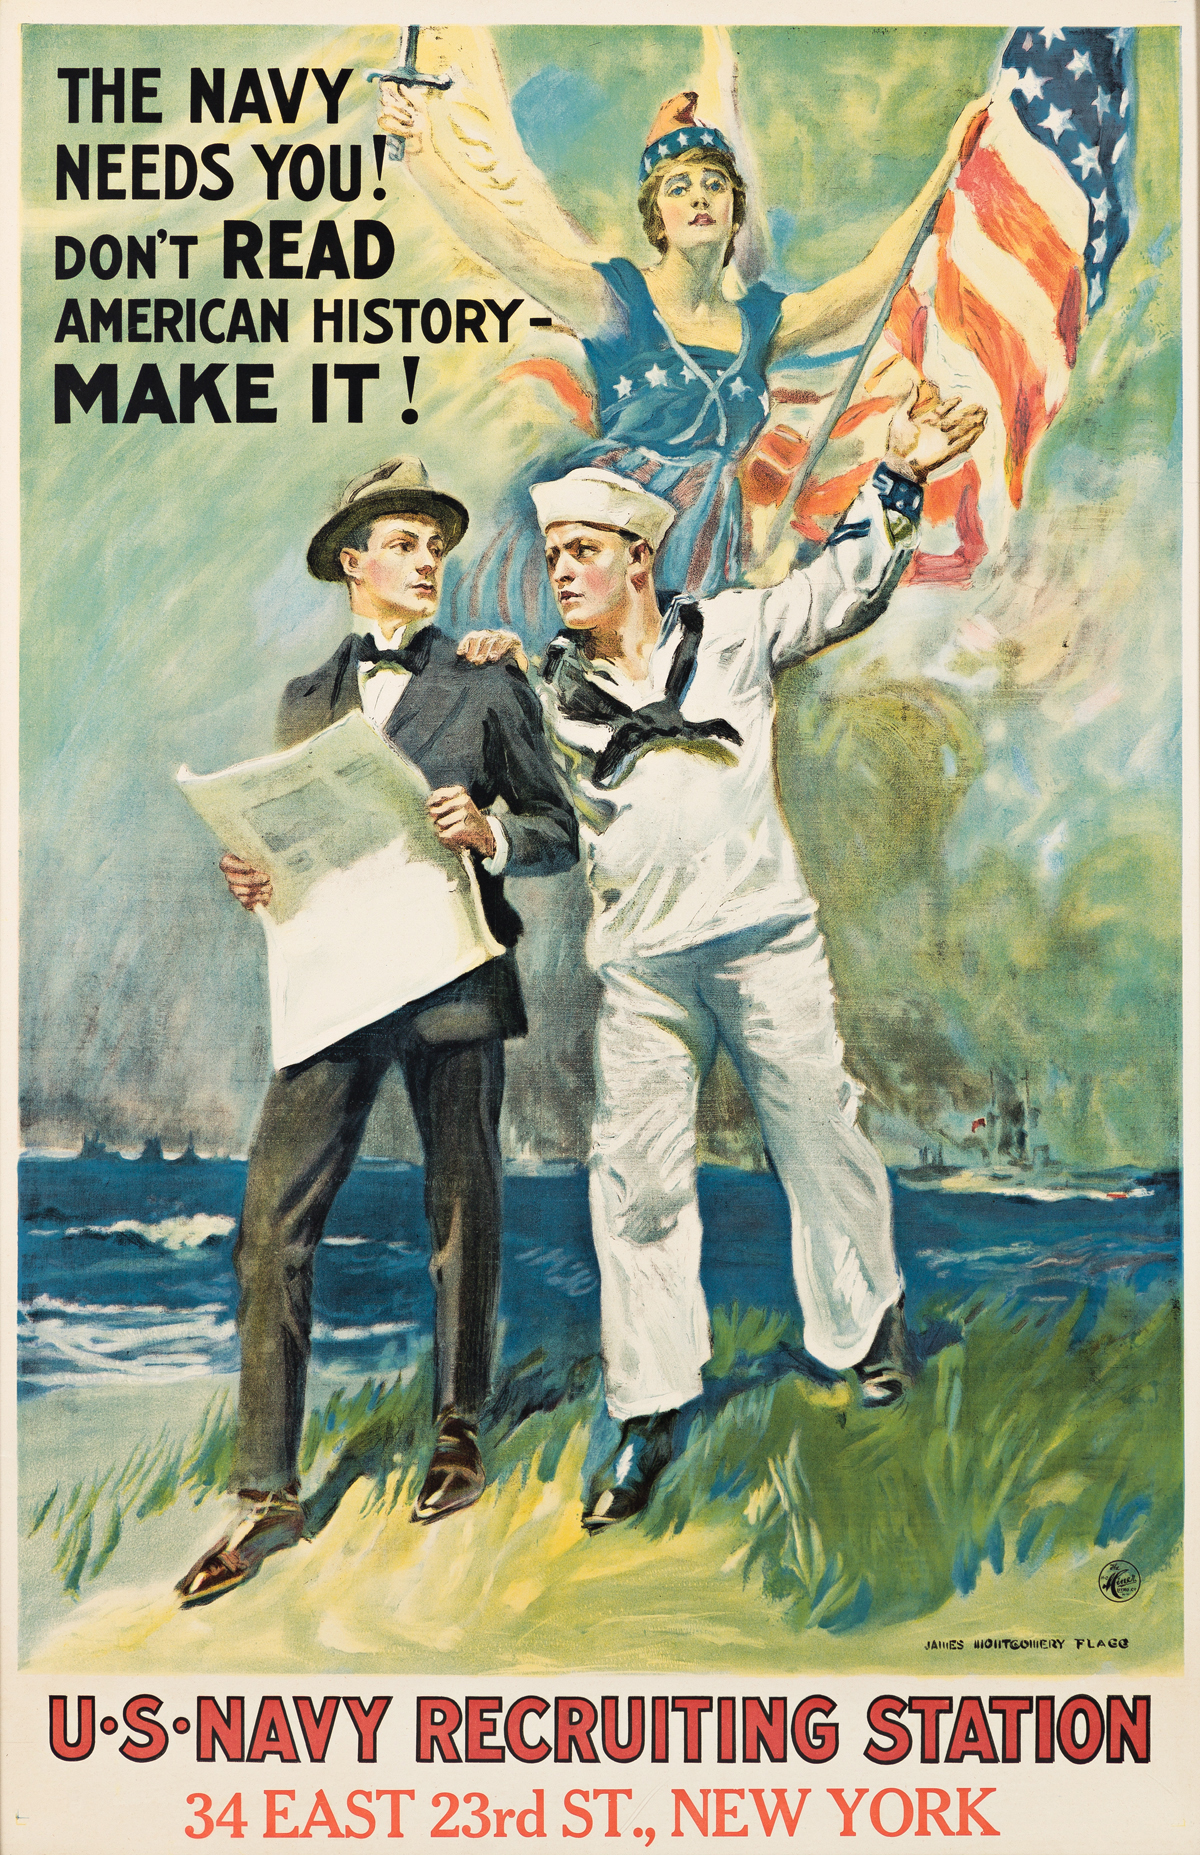 JAMES MONTGOMERY FLAGG (1870-1960).  THE NAVY NEEDS YOU! DONT READ AMERICAN HISTORY - MAKE IT! 1917. 41¼x27 inches, 104¾x68½ cm. The H